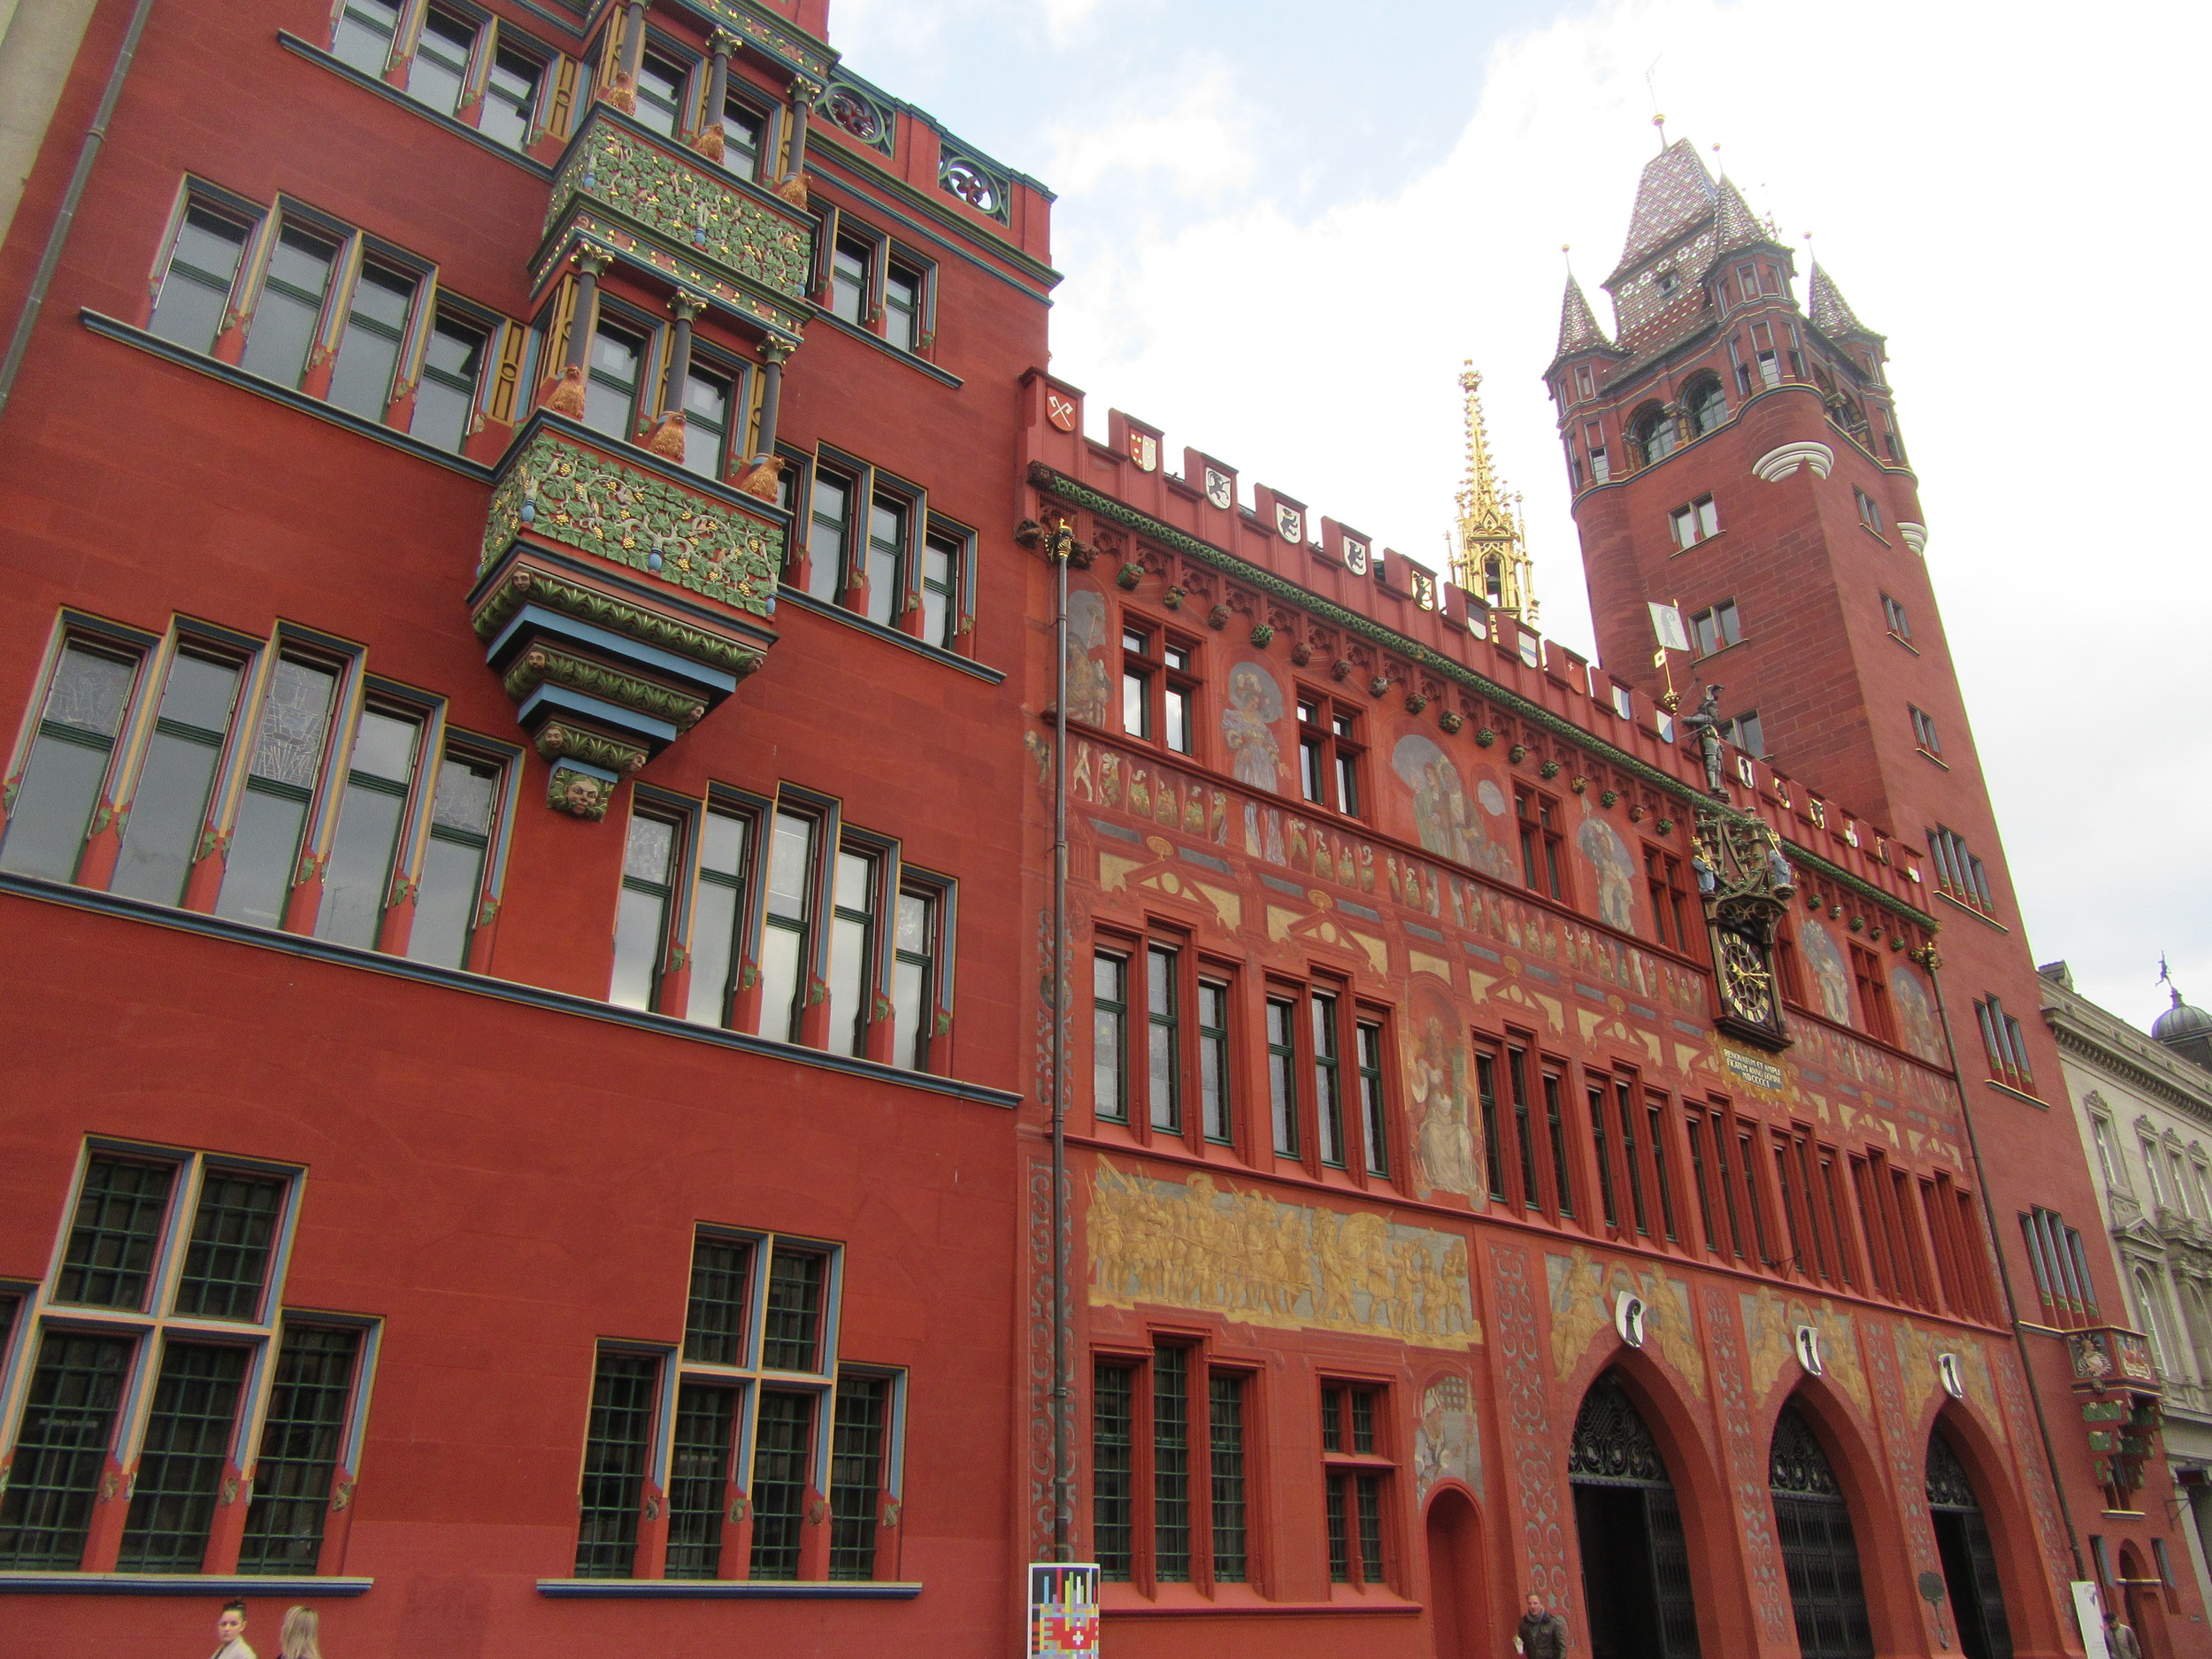 The Town Hall, or Rathaus in German, is bright red and sticks out like a sore thumb.